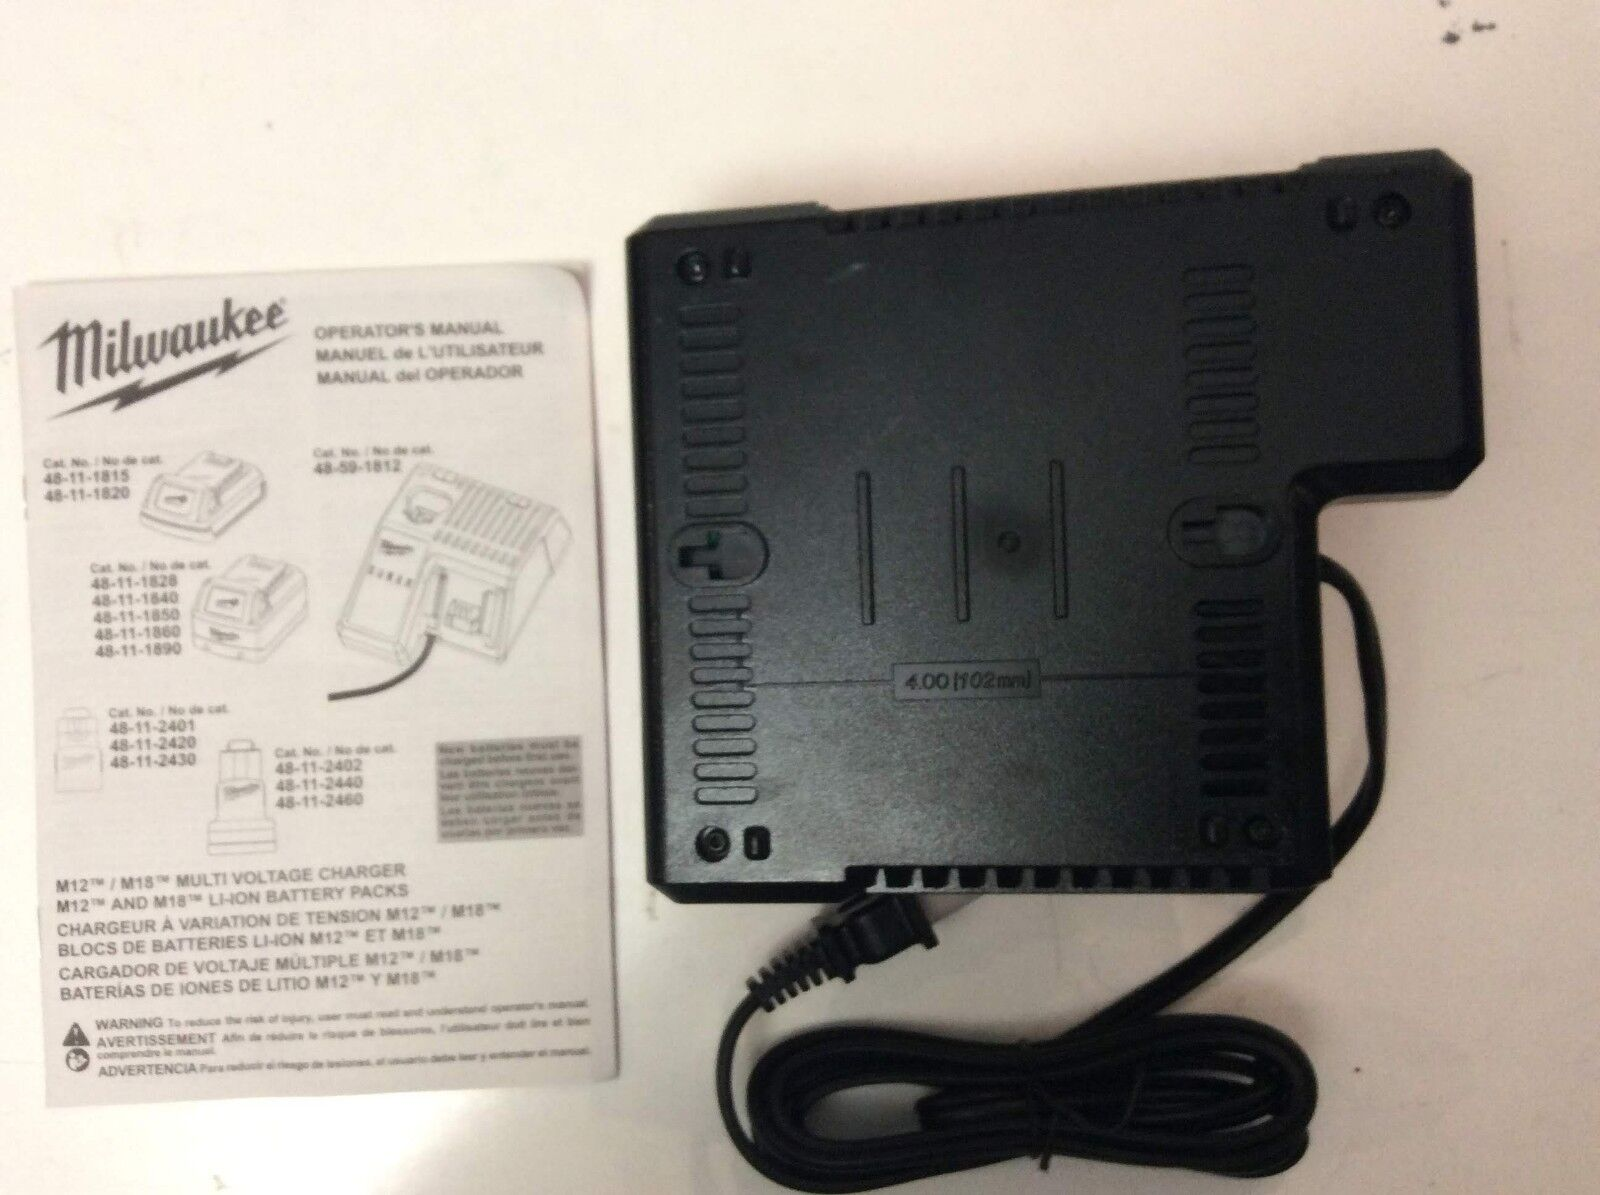 MILWAUKEE 48-59-1812 18V 18 VOLT M12 / M18 LITHIUM ION CHARGER NEW 5